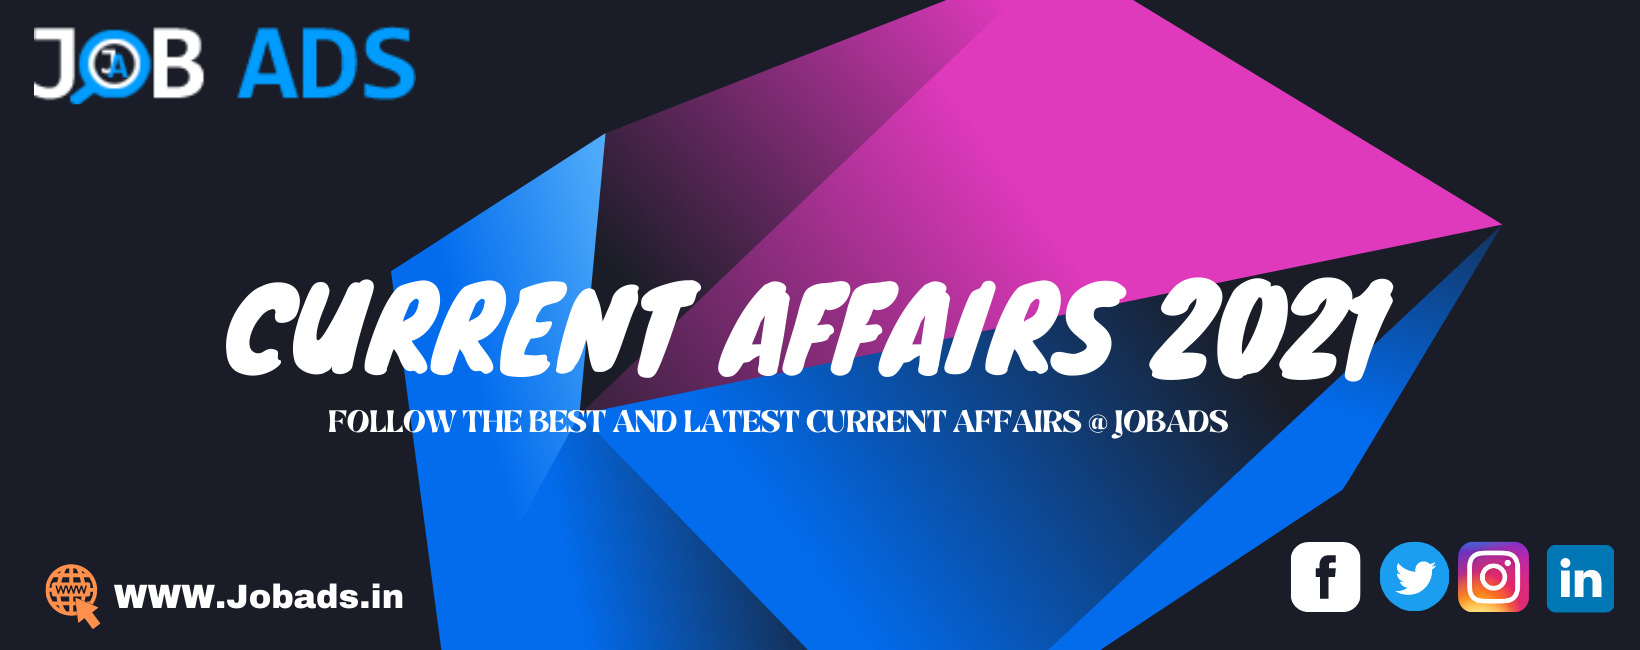 Latest Current Affairs Of 2021